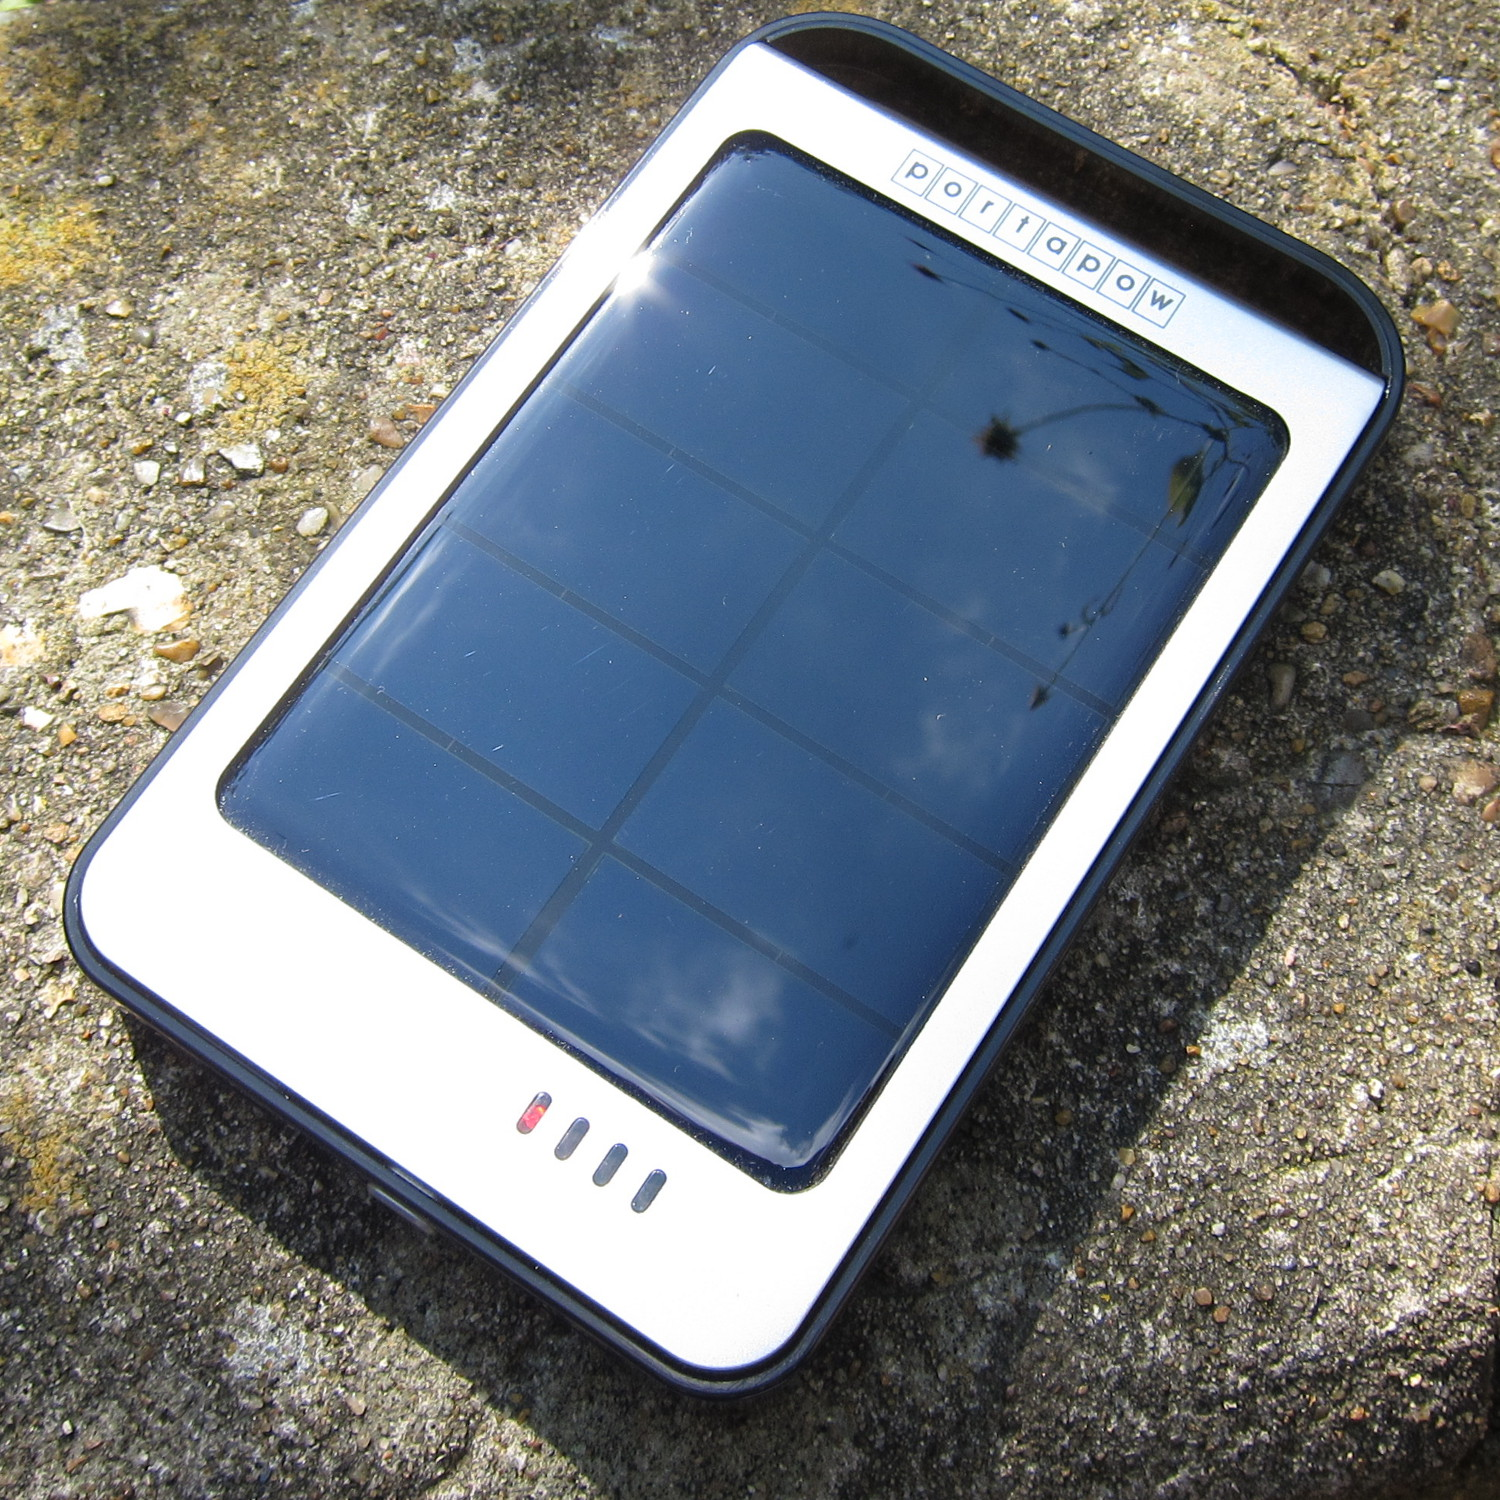 ... 6000mAh Solar USB battery pack with built in 1.2W Solar Panel